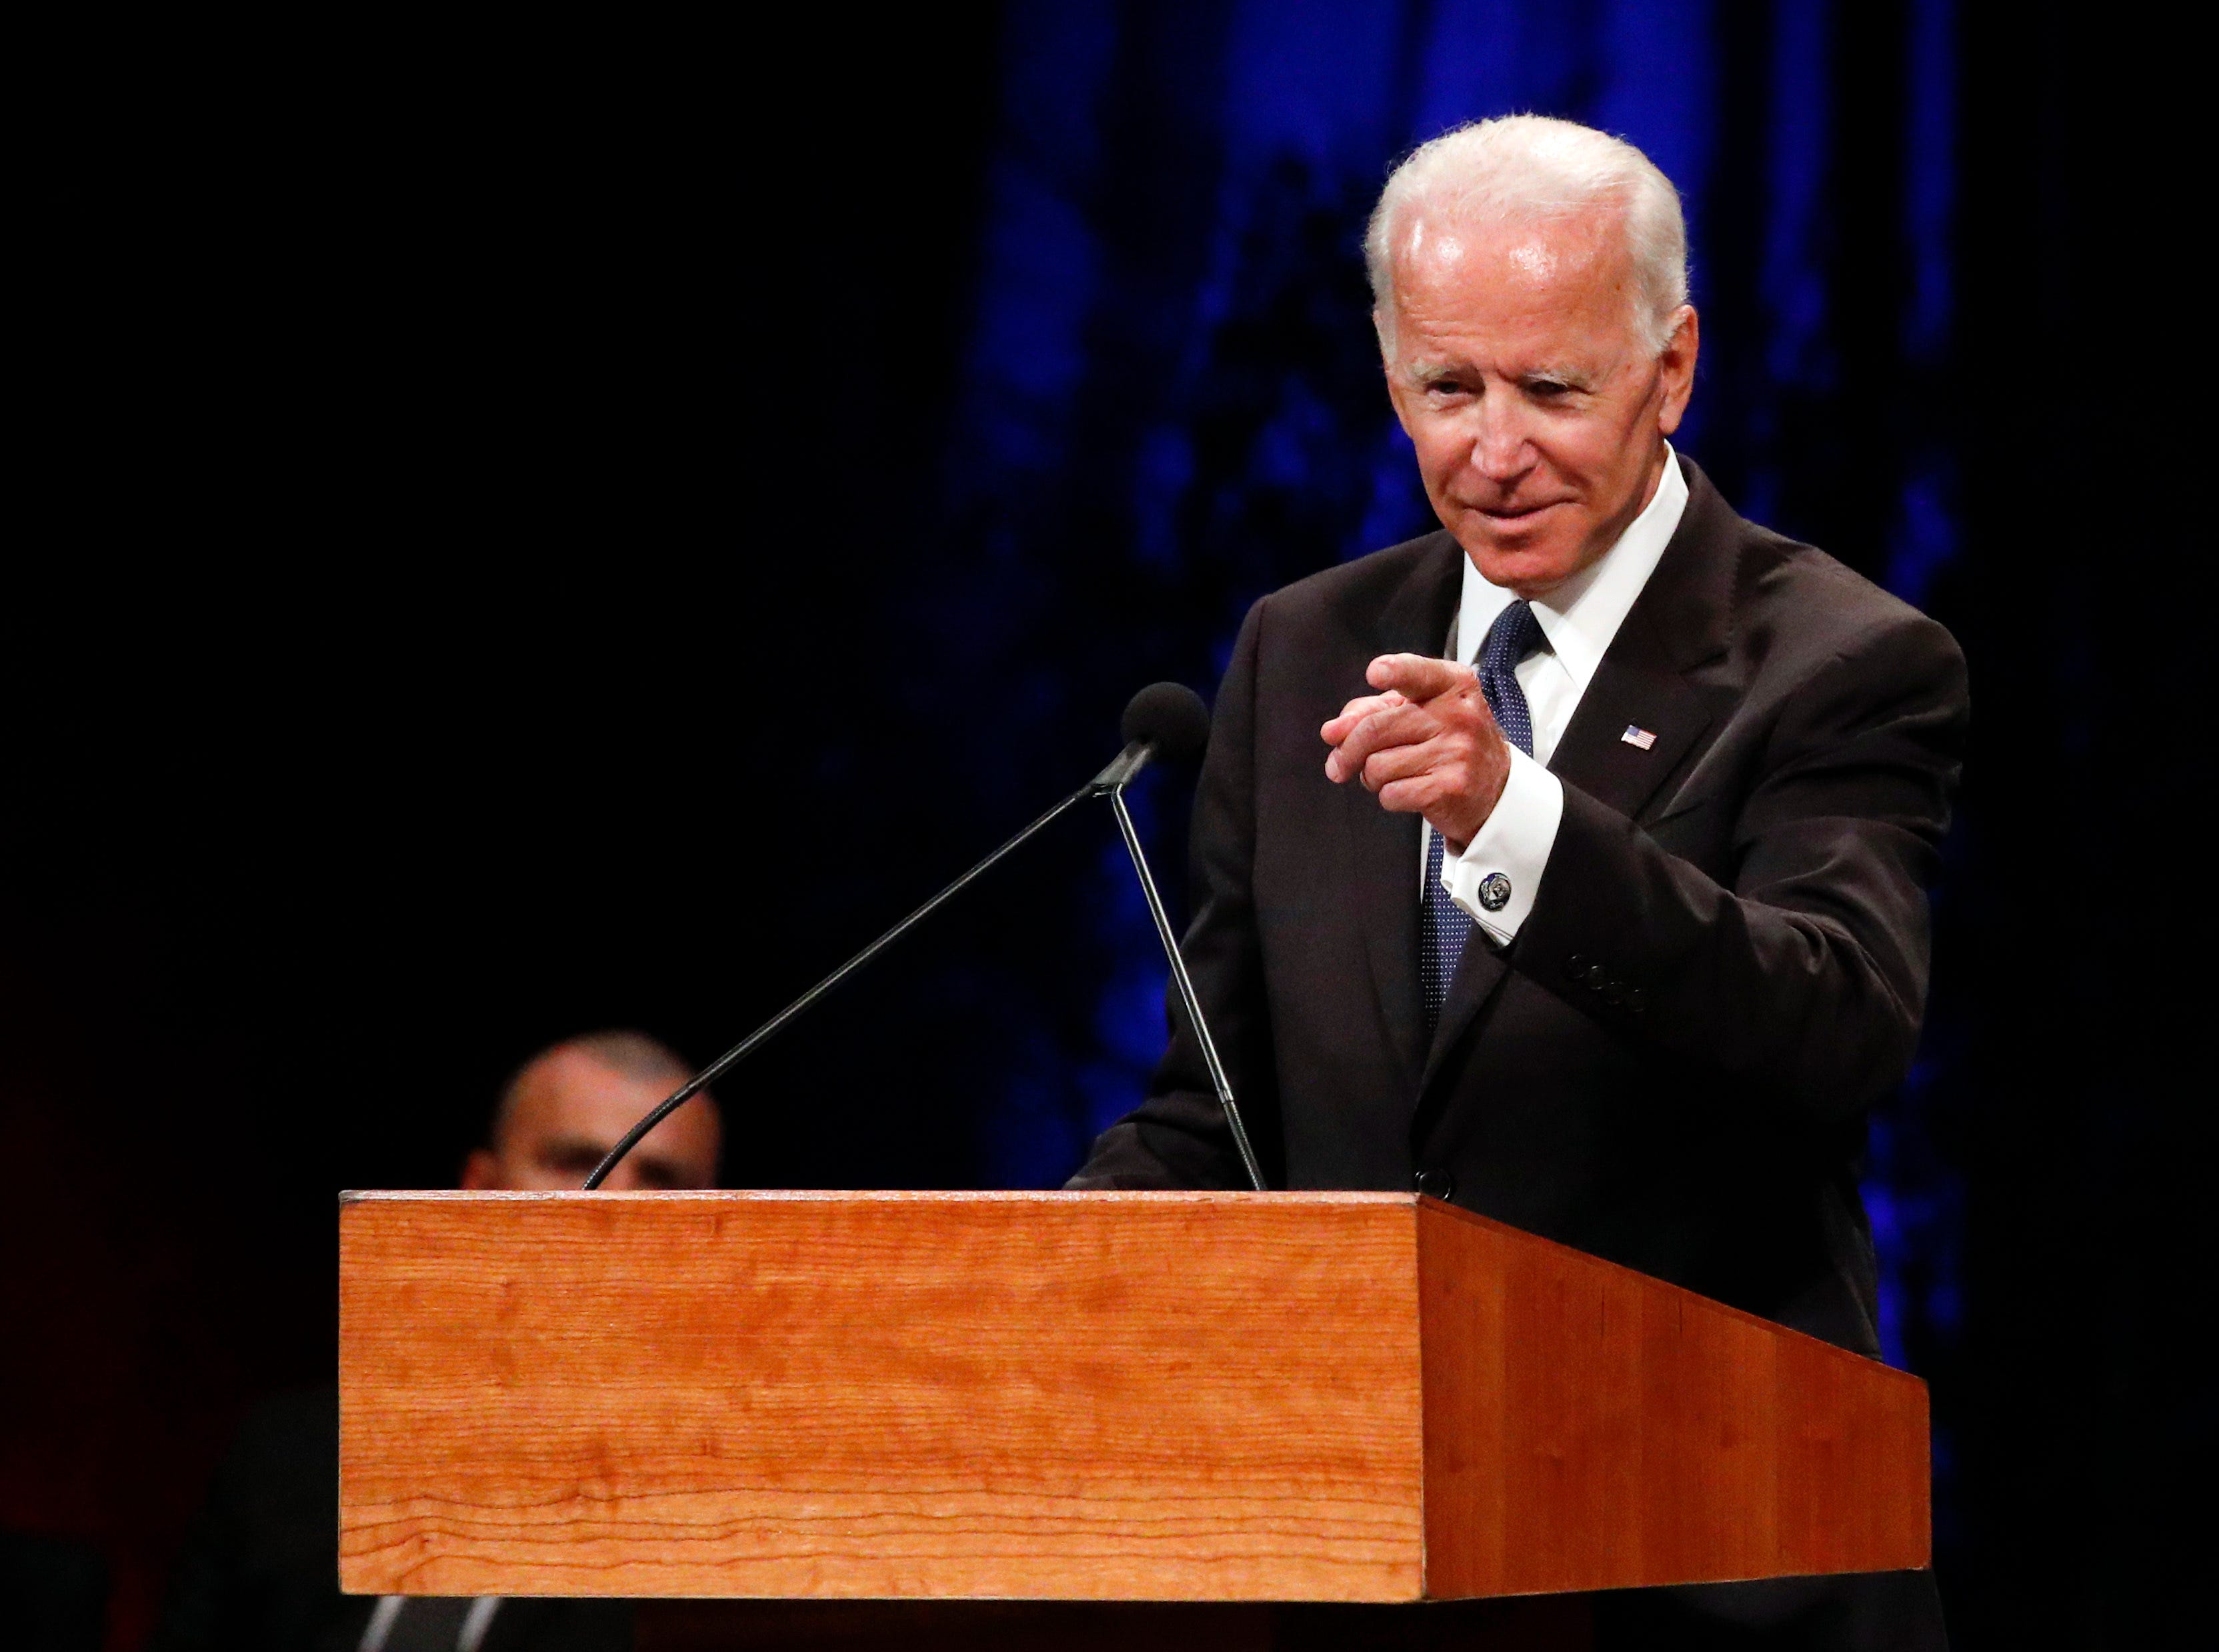 Former Vice President Joe Biden gives a tribute during memorial service at North Phoenix Baptist Church for Sen. John McCain, R-Ariz., Aug. 30, 2018, in Phoenix.